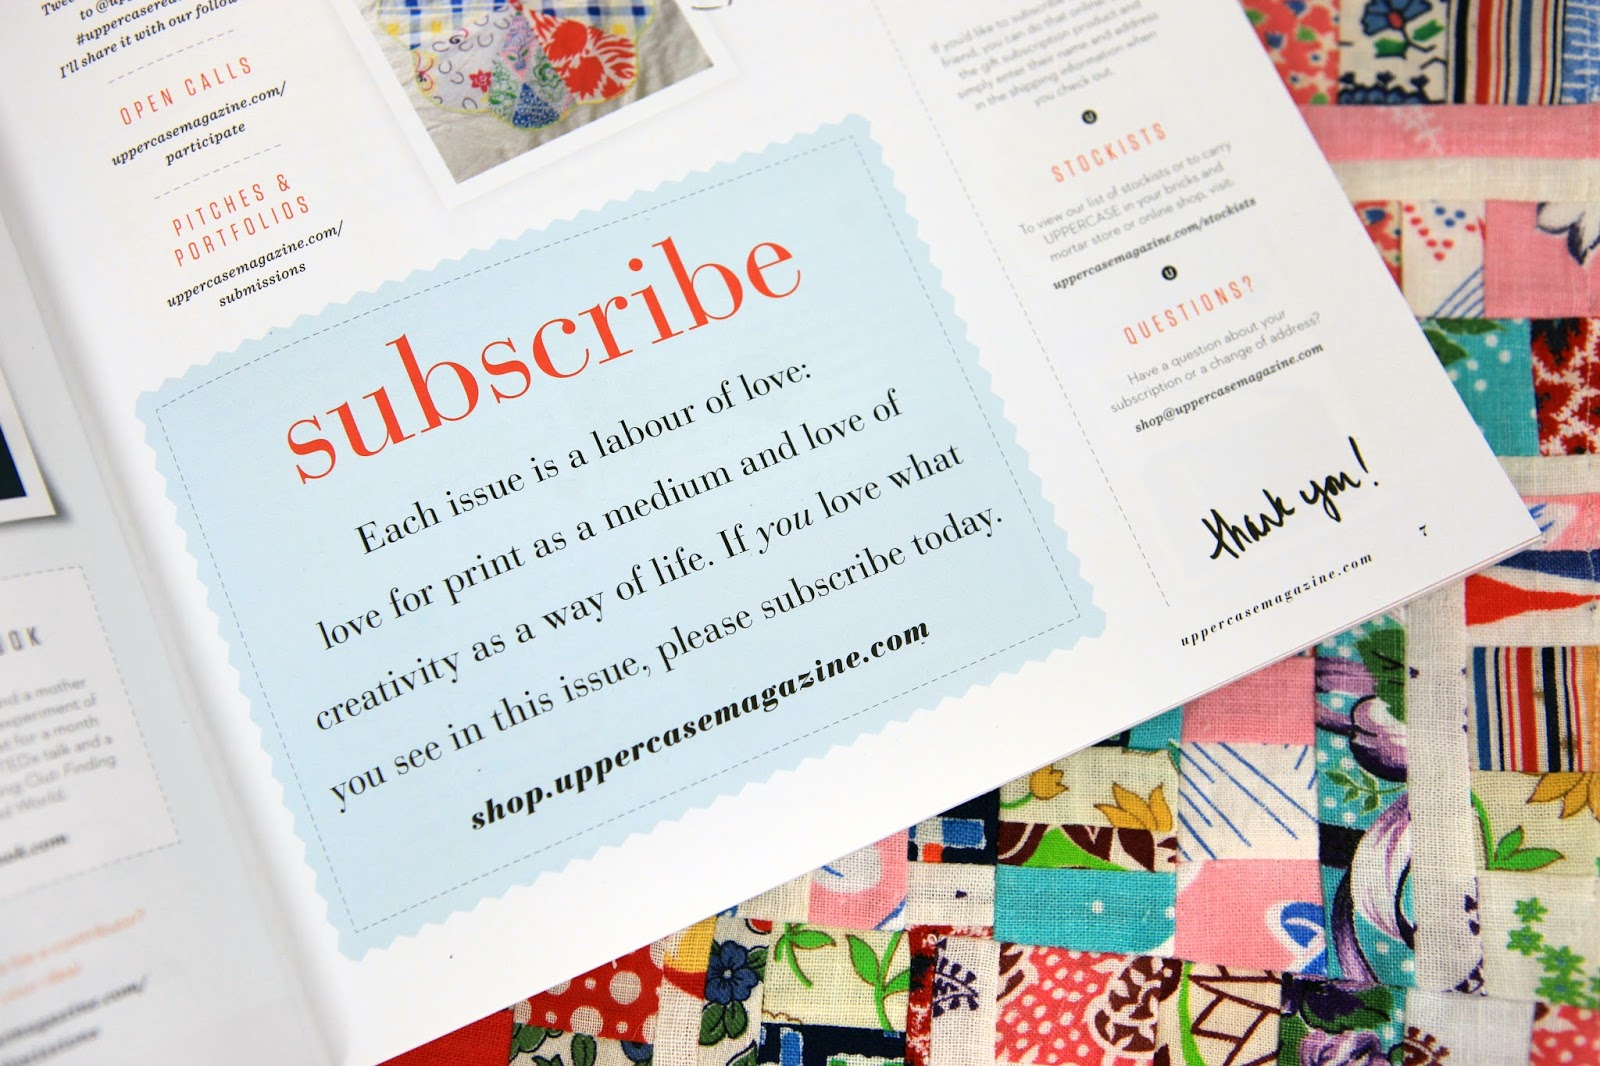 Janine Vangool, Uppercase Magazine, Interview With Anne Butera On The My  Giant Strawberry Blog